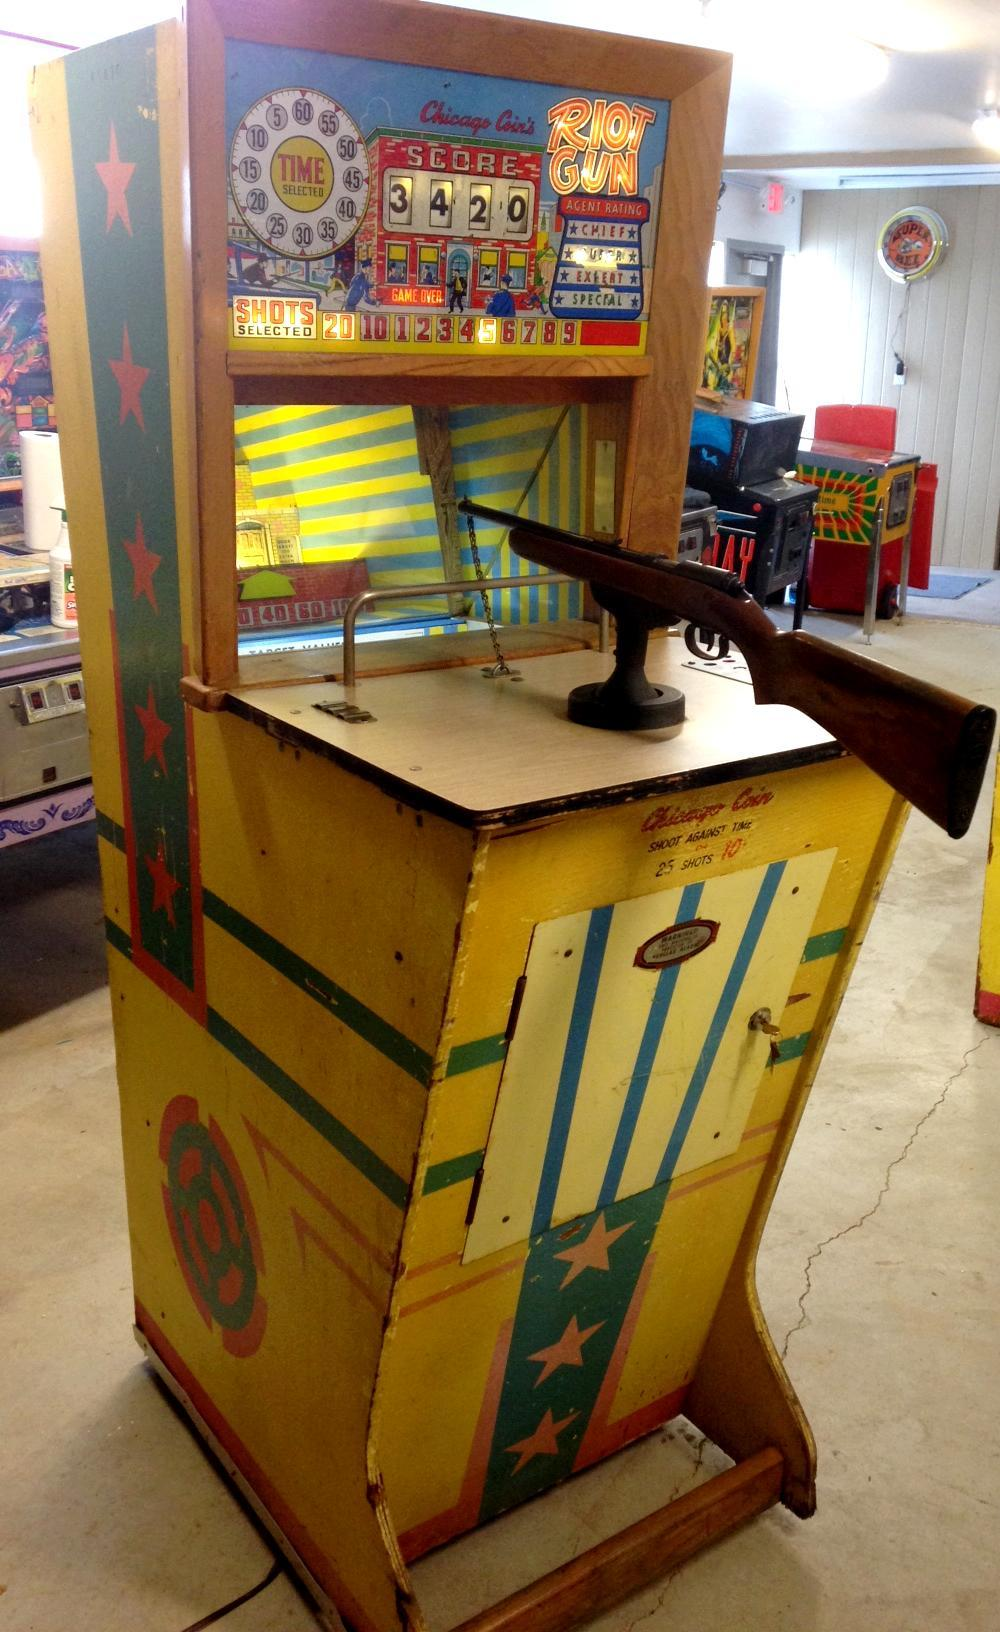 Pop Machine For Sale >> 1963 Chicago Coin Machine Riot Gun coin operated mechanical arcade gun game rifle range